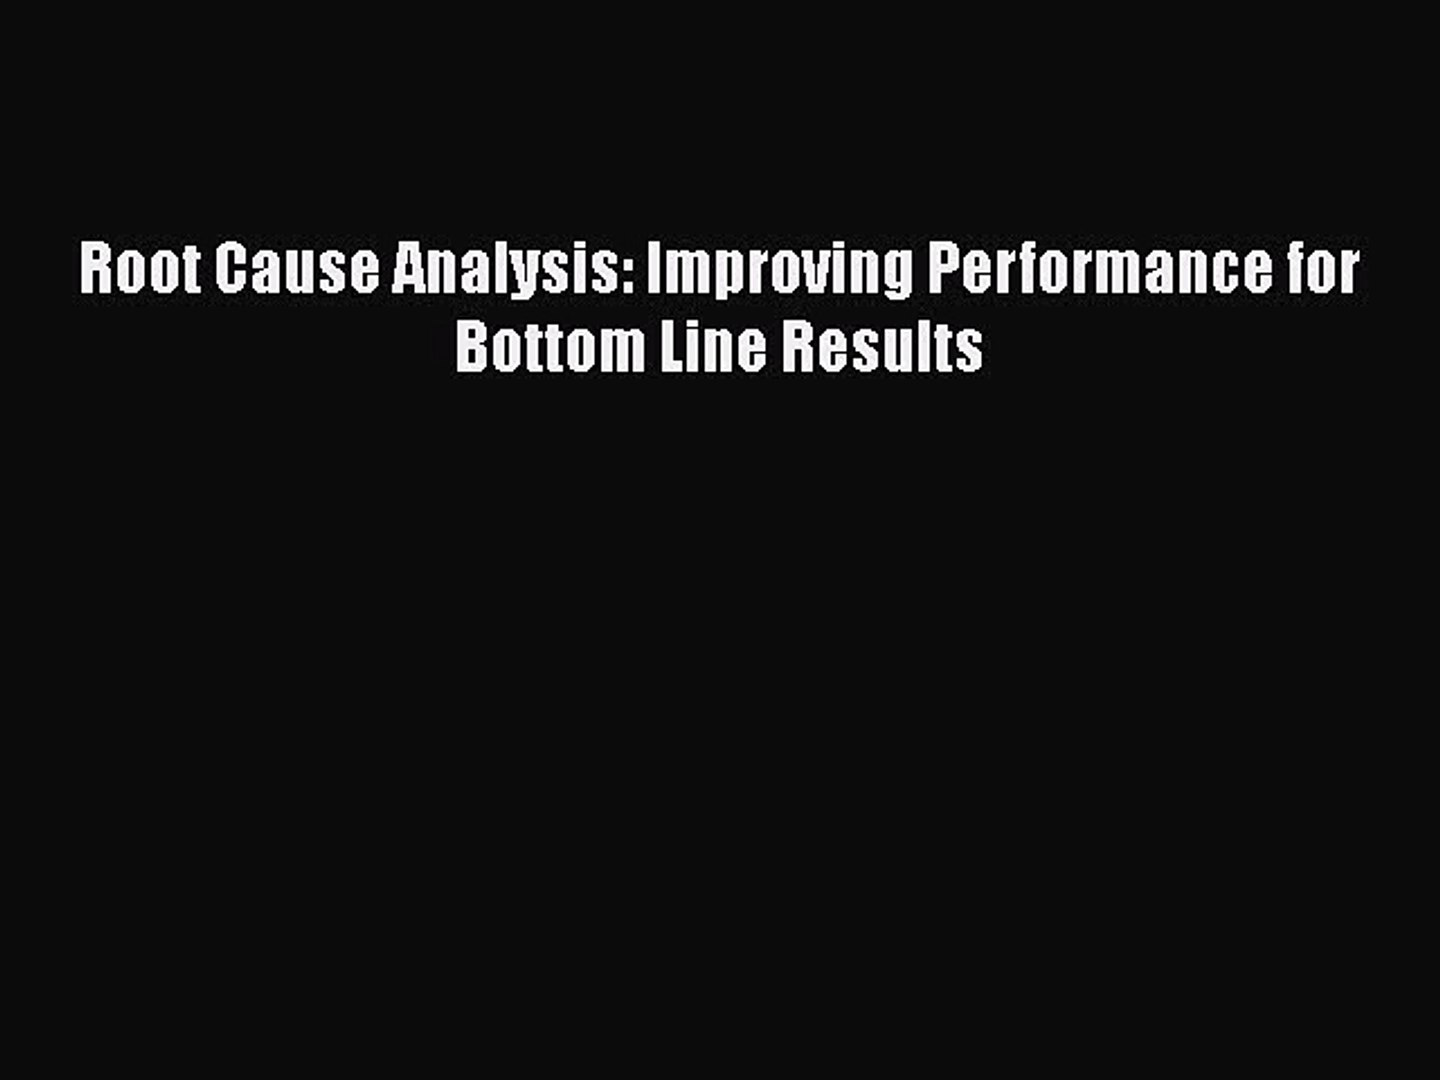 [PDF] Root Cause Analysis: Improving Performance for Bottom Line Results [Download] Online